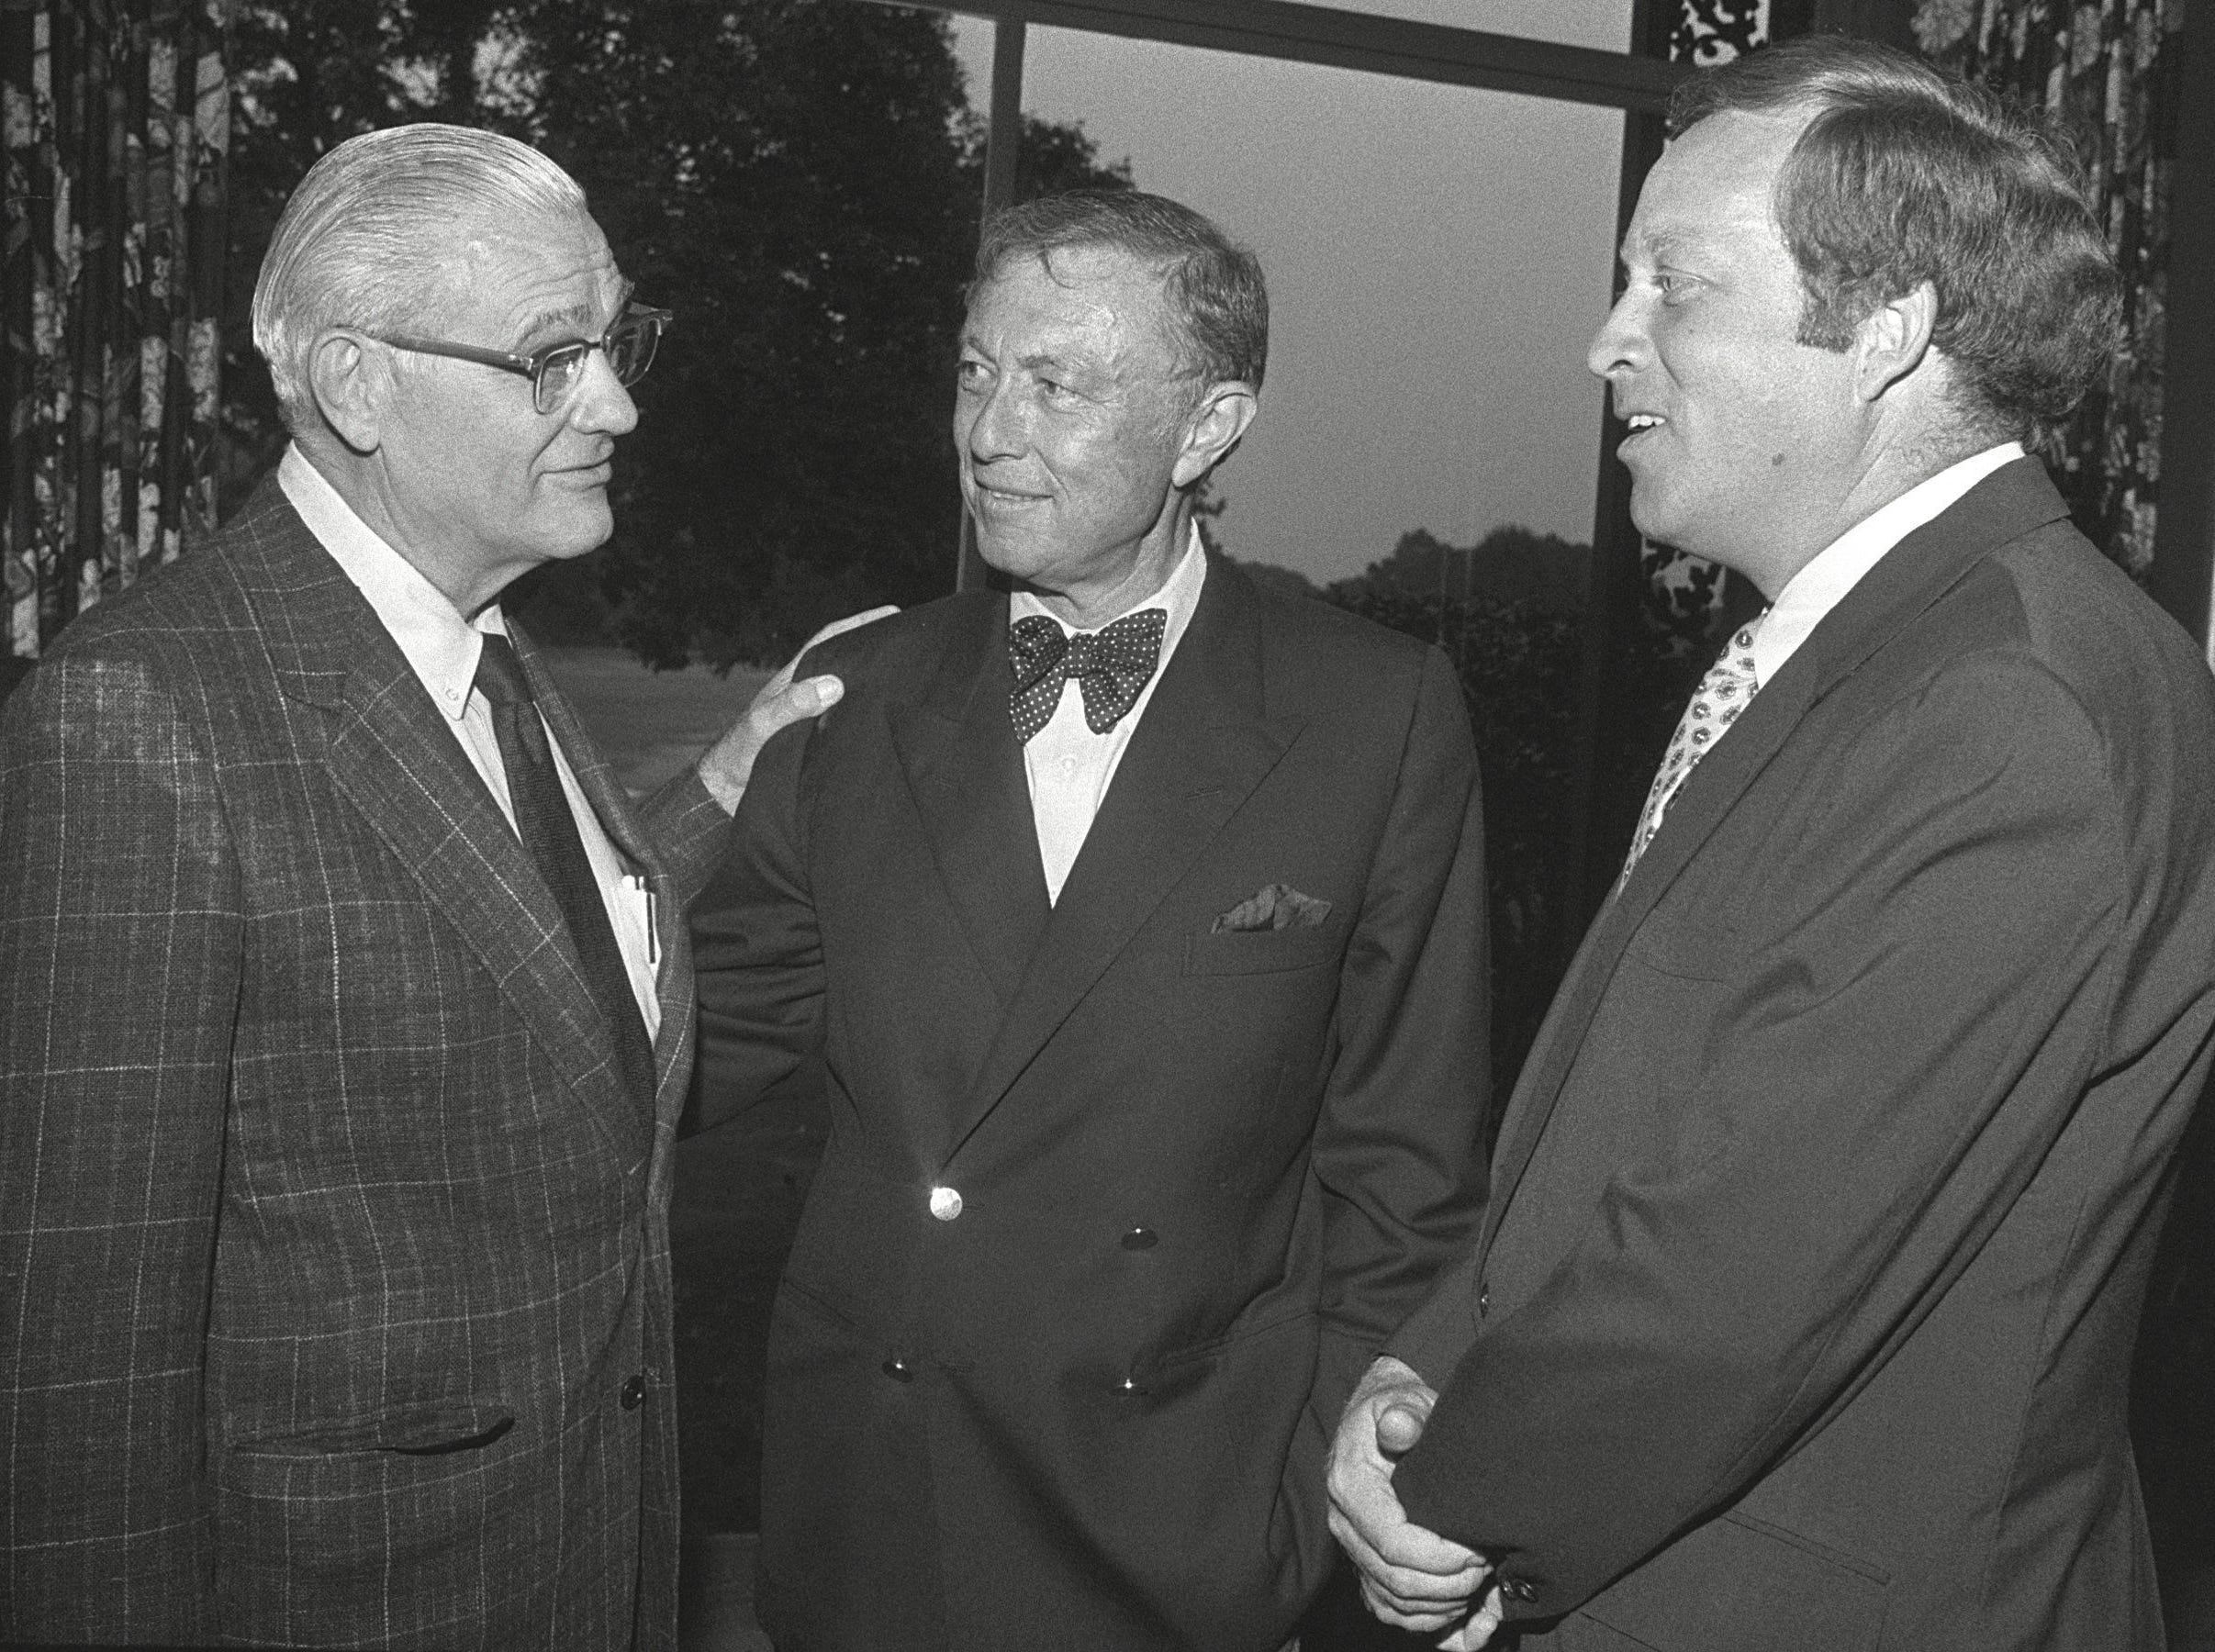 Former Ohio State University head football coach Woody Hayes (Left) visits with Tim Treadwell III (Center) and Reggie Barnes (Right) at the Touchdown Club of Memphis on 4 Oct 1982.  Hayes was the featured speaker.